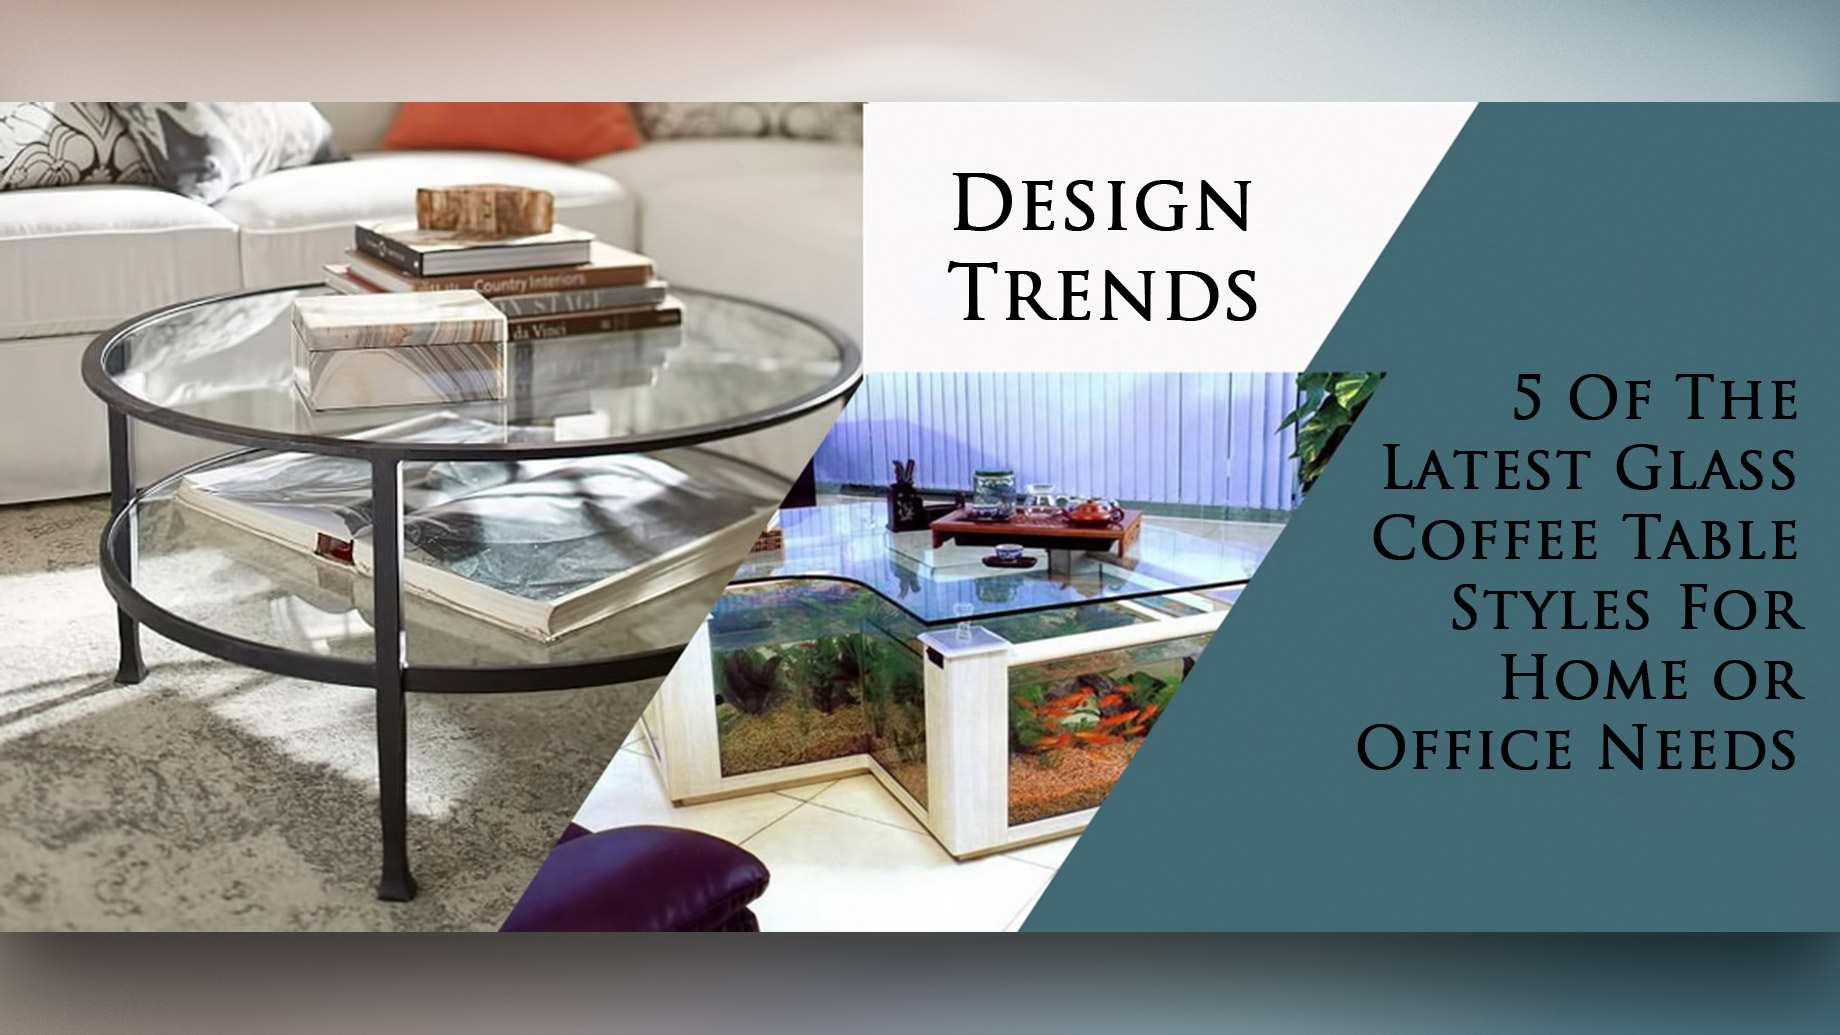 Design Trends - 5 Of The Latest Glass Coffee Table Styles For Home or Office Needs